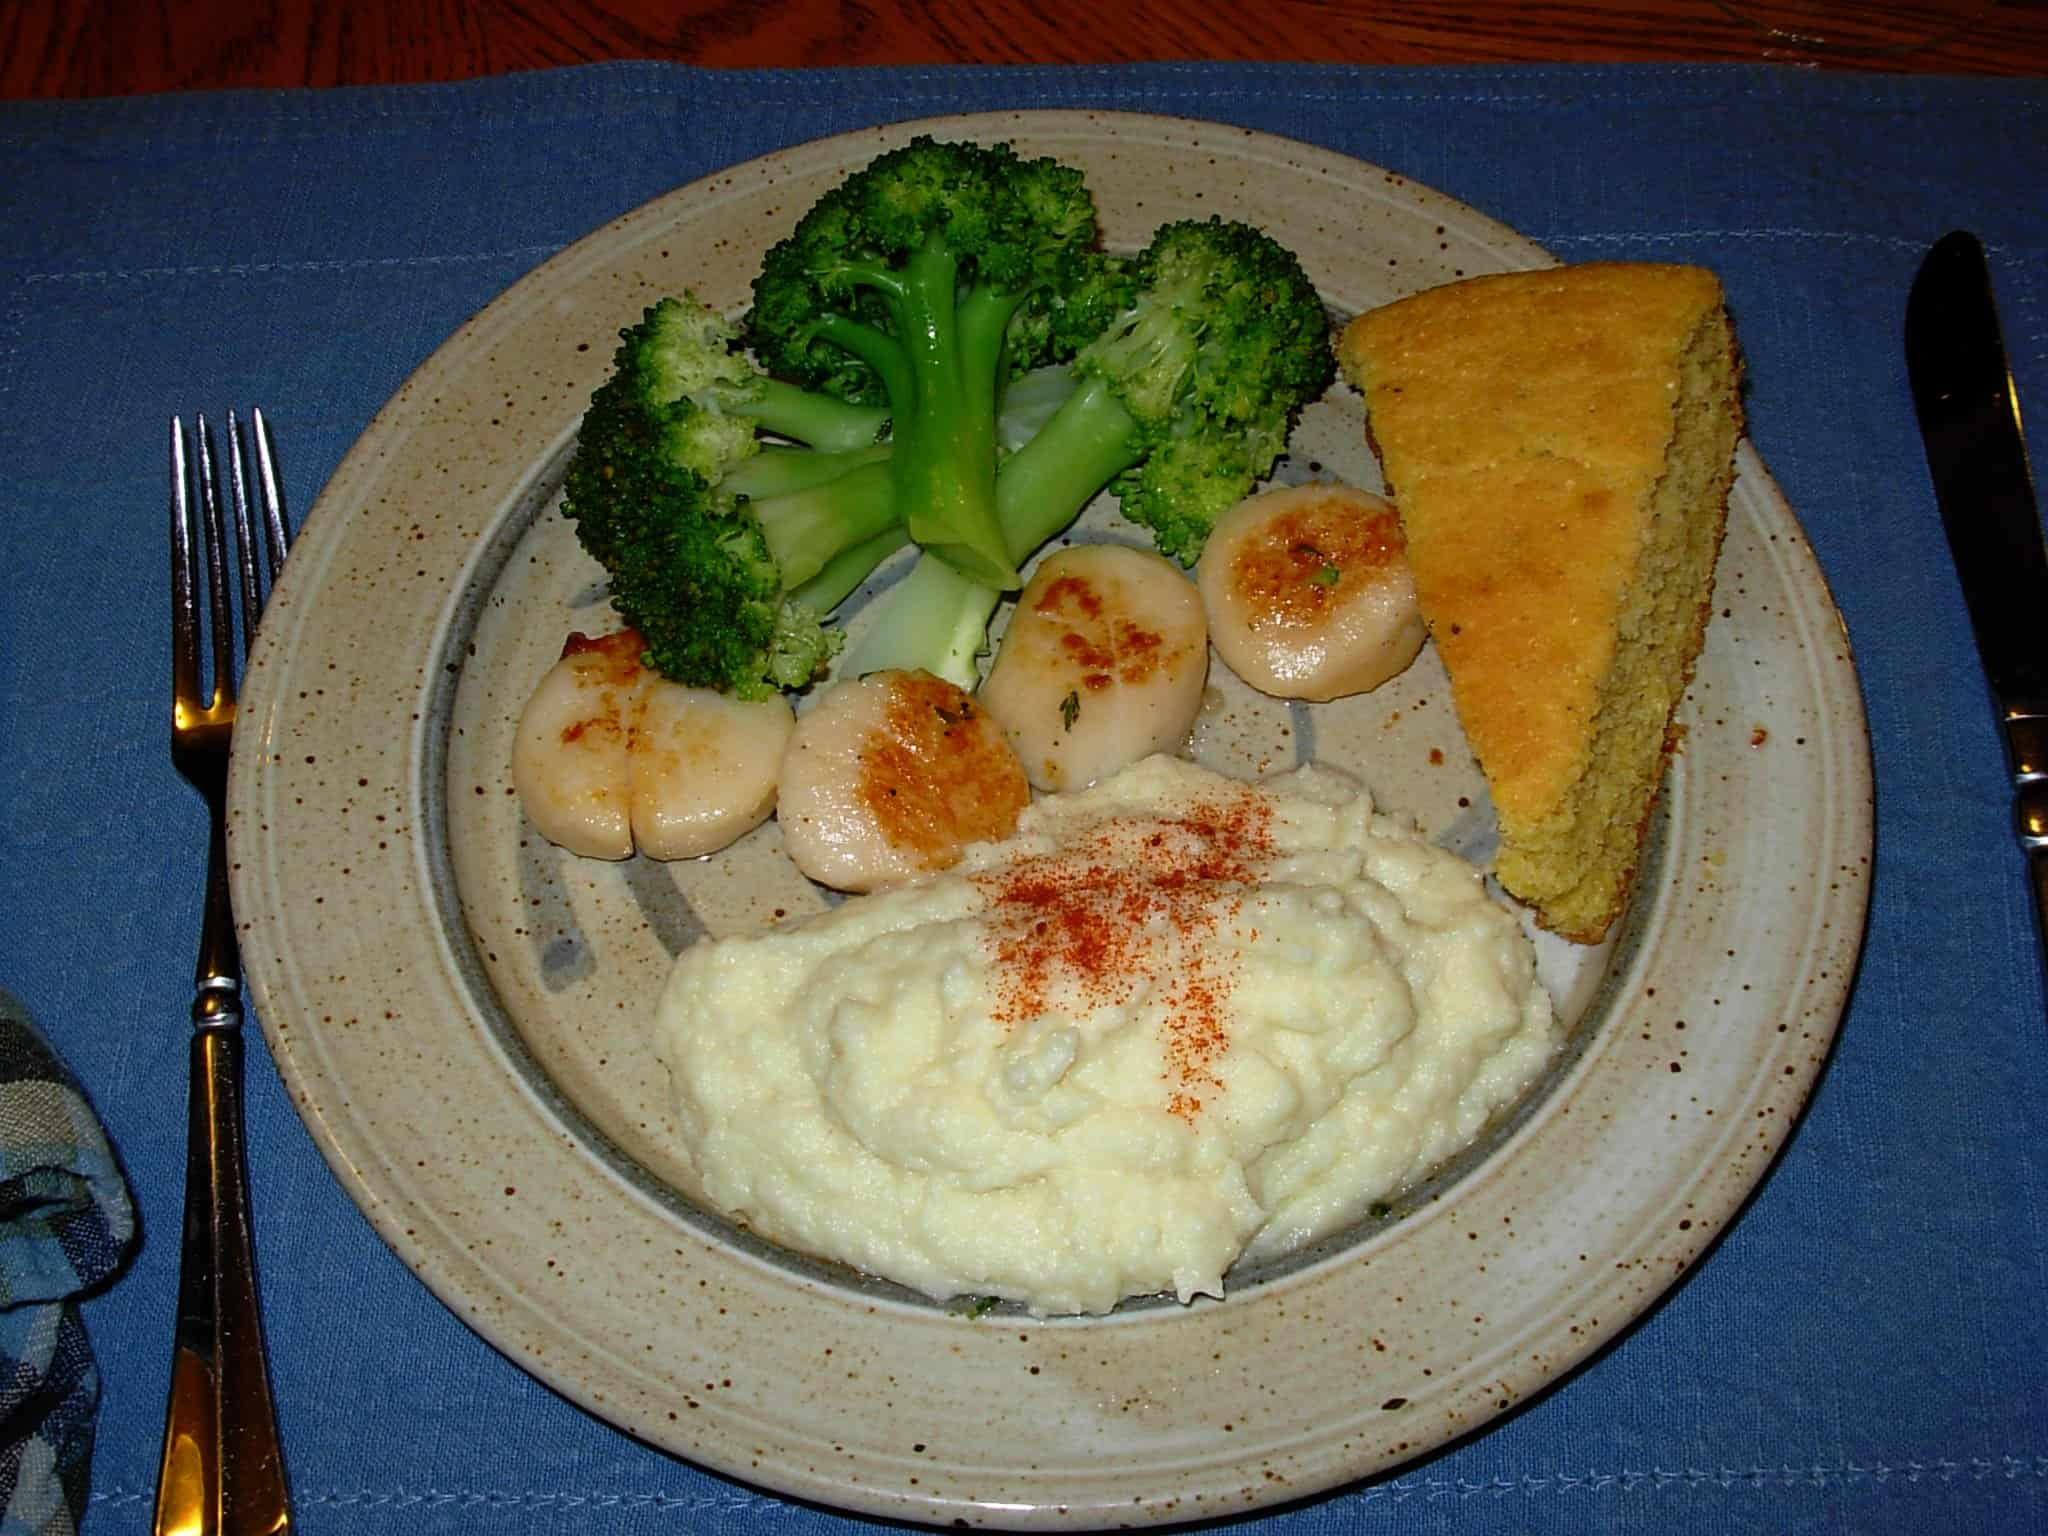 Scallops, broccoli, mashed cauliflower, cornbread